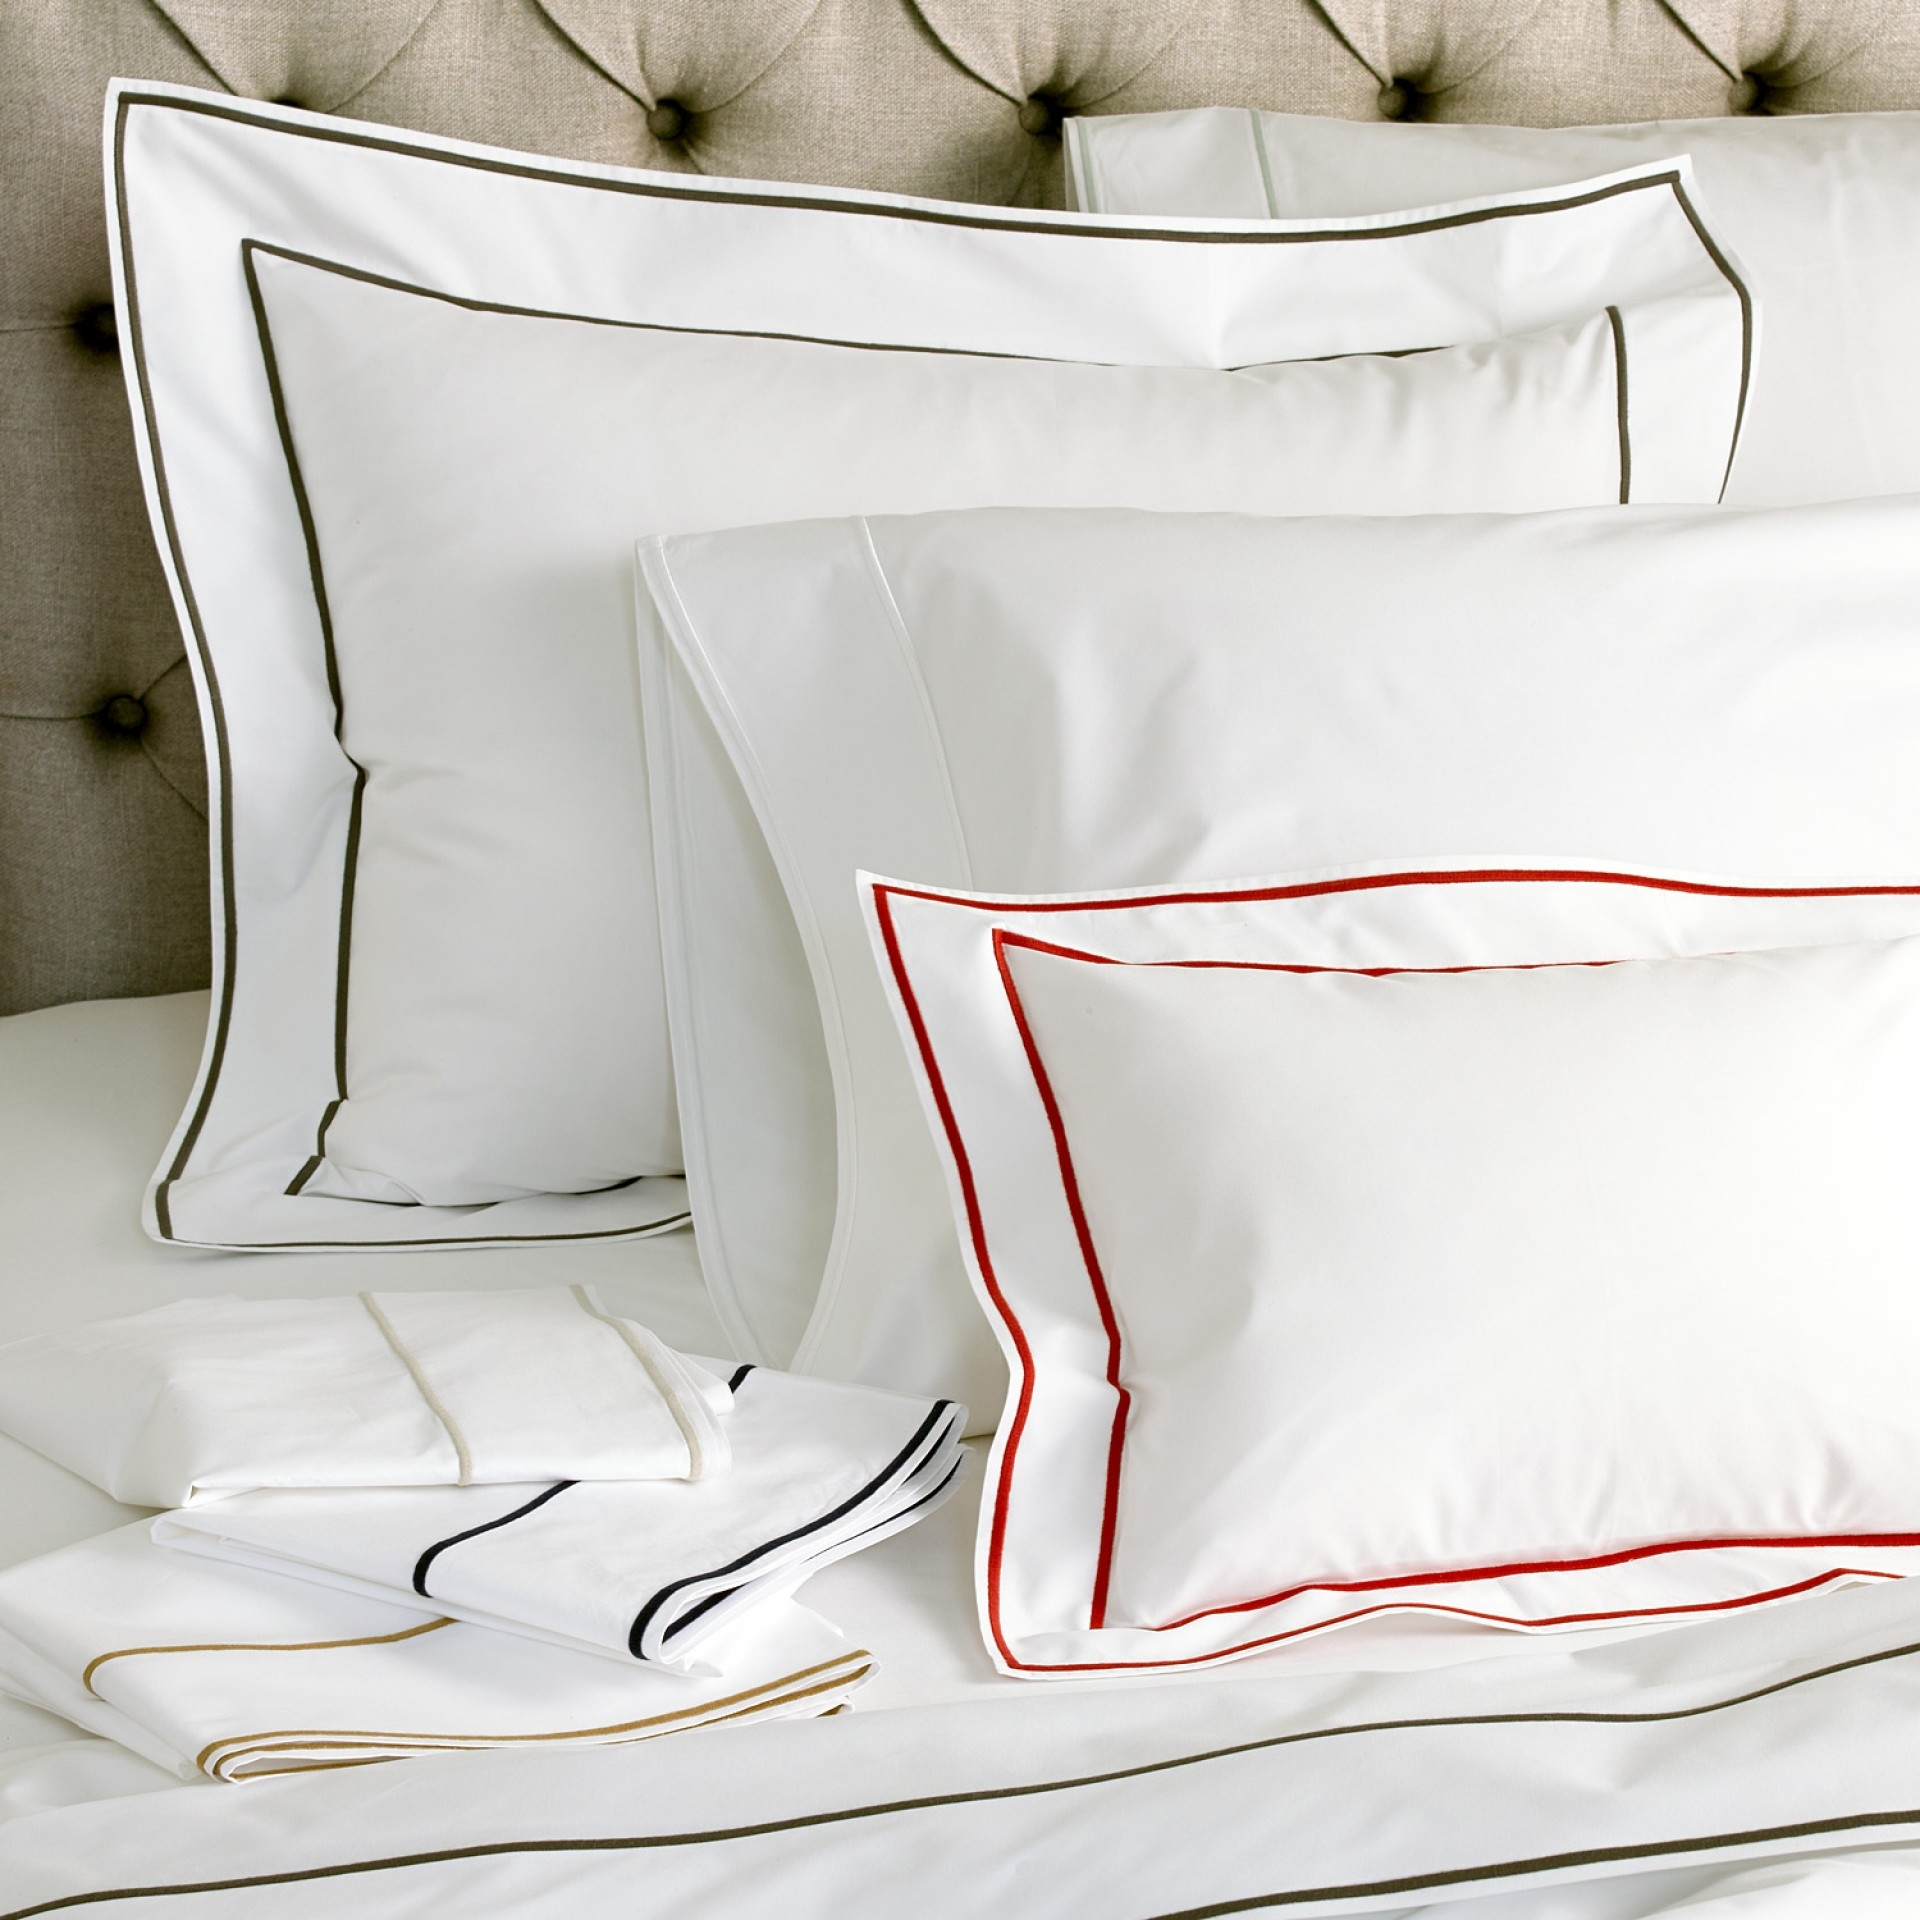 Inspiring matouk sheets with pillows for bedroom with matouk sheets sale